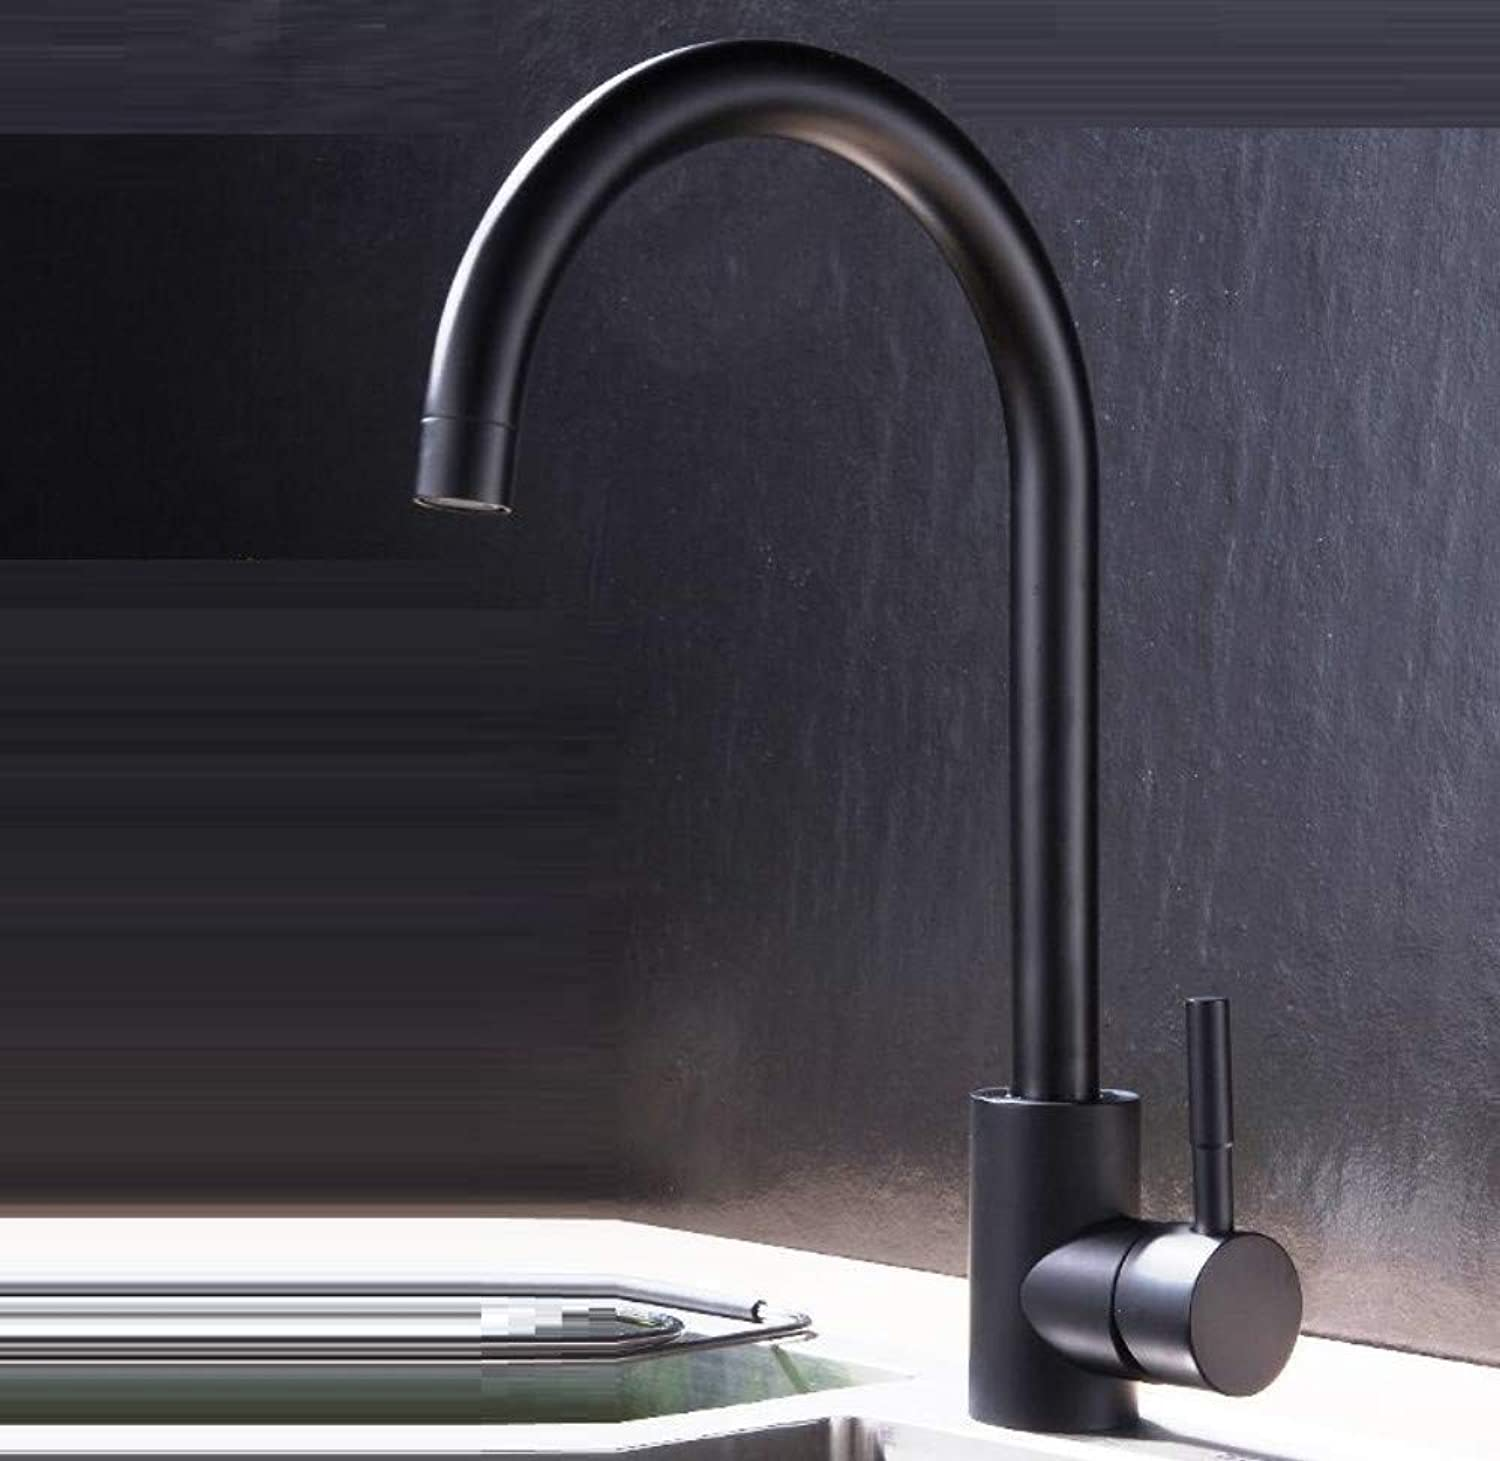 Bathroom Faucet Black 304 Stainless Steel Sink Faucet Sink Sink Kitchen Faucet Hot and Cold Double Home Can Be redated